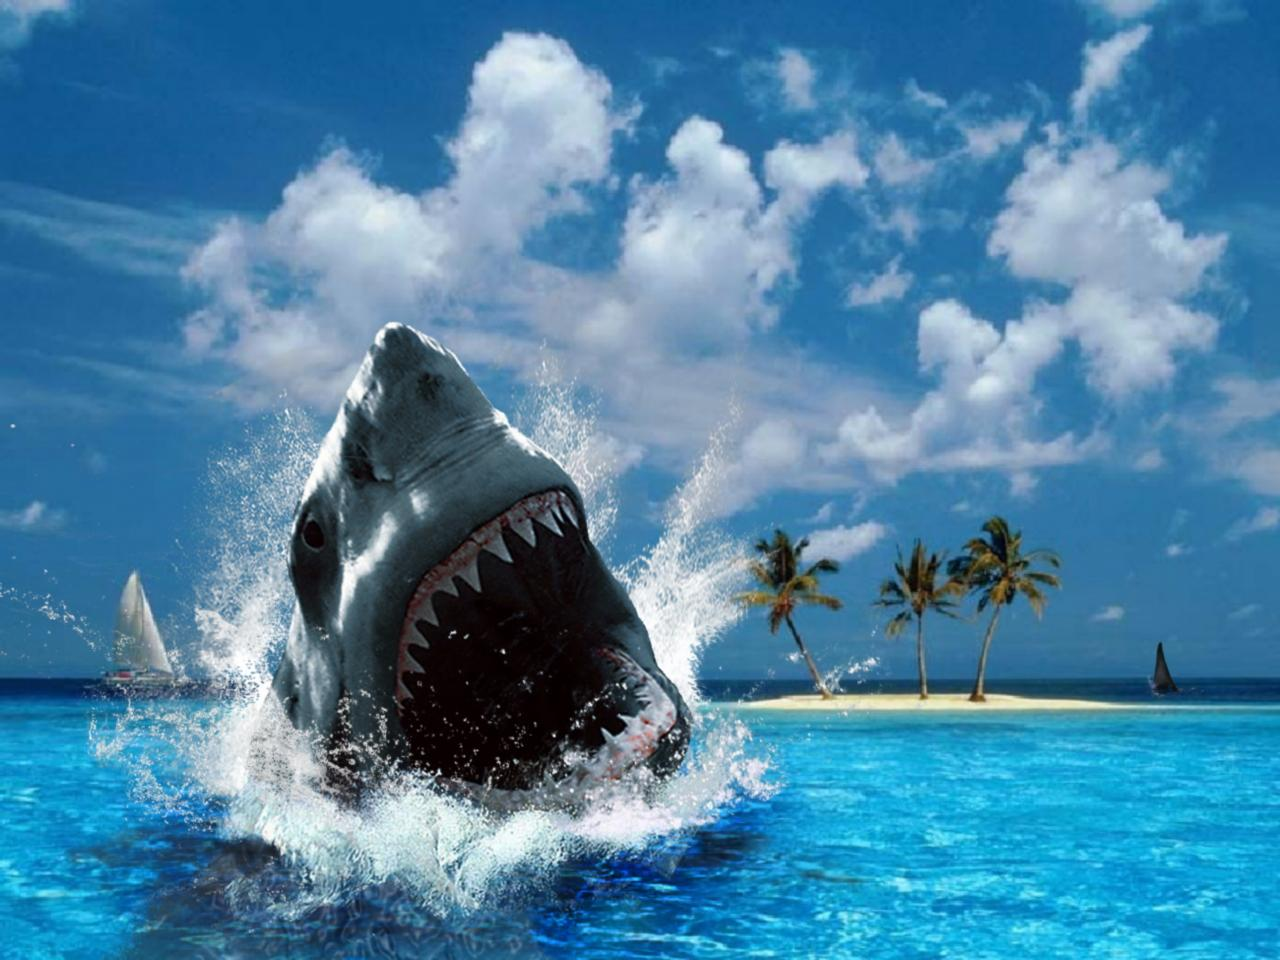 download wallpaper shark 1600 - photo #44